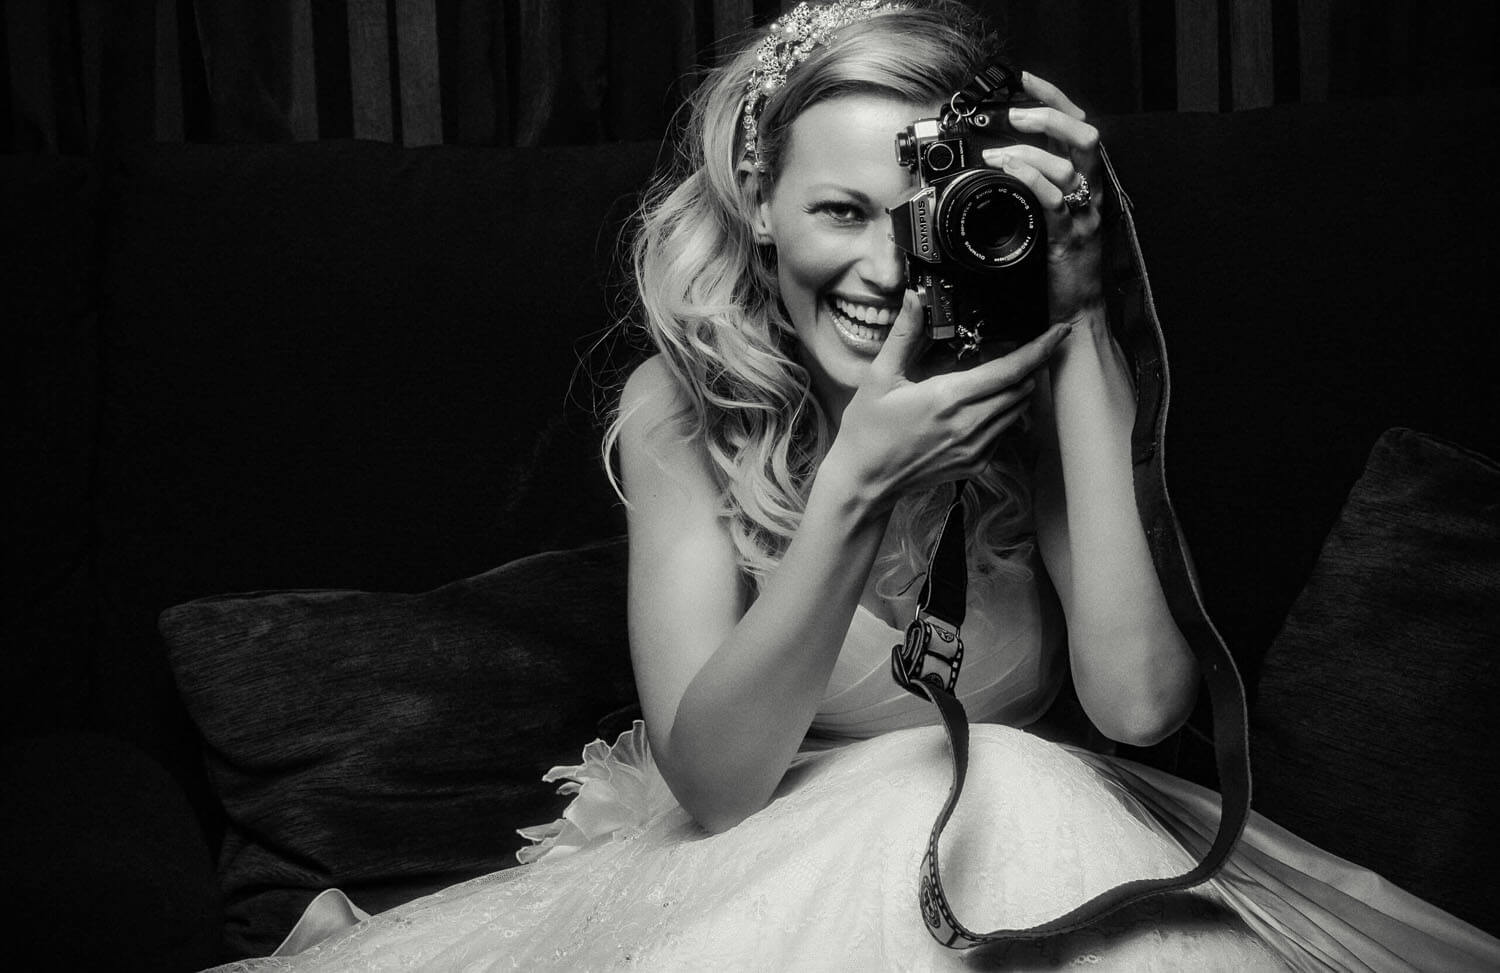 Photo of beautiful model bride with old-fashioned camera